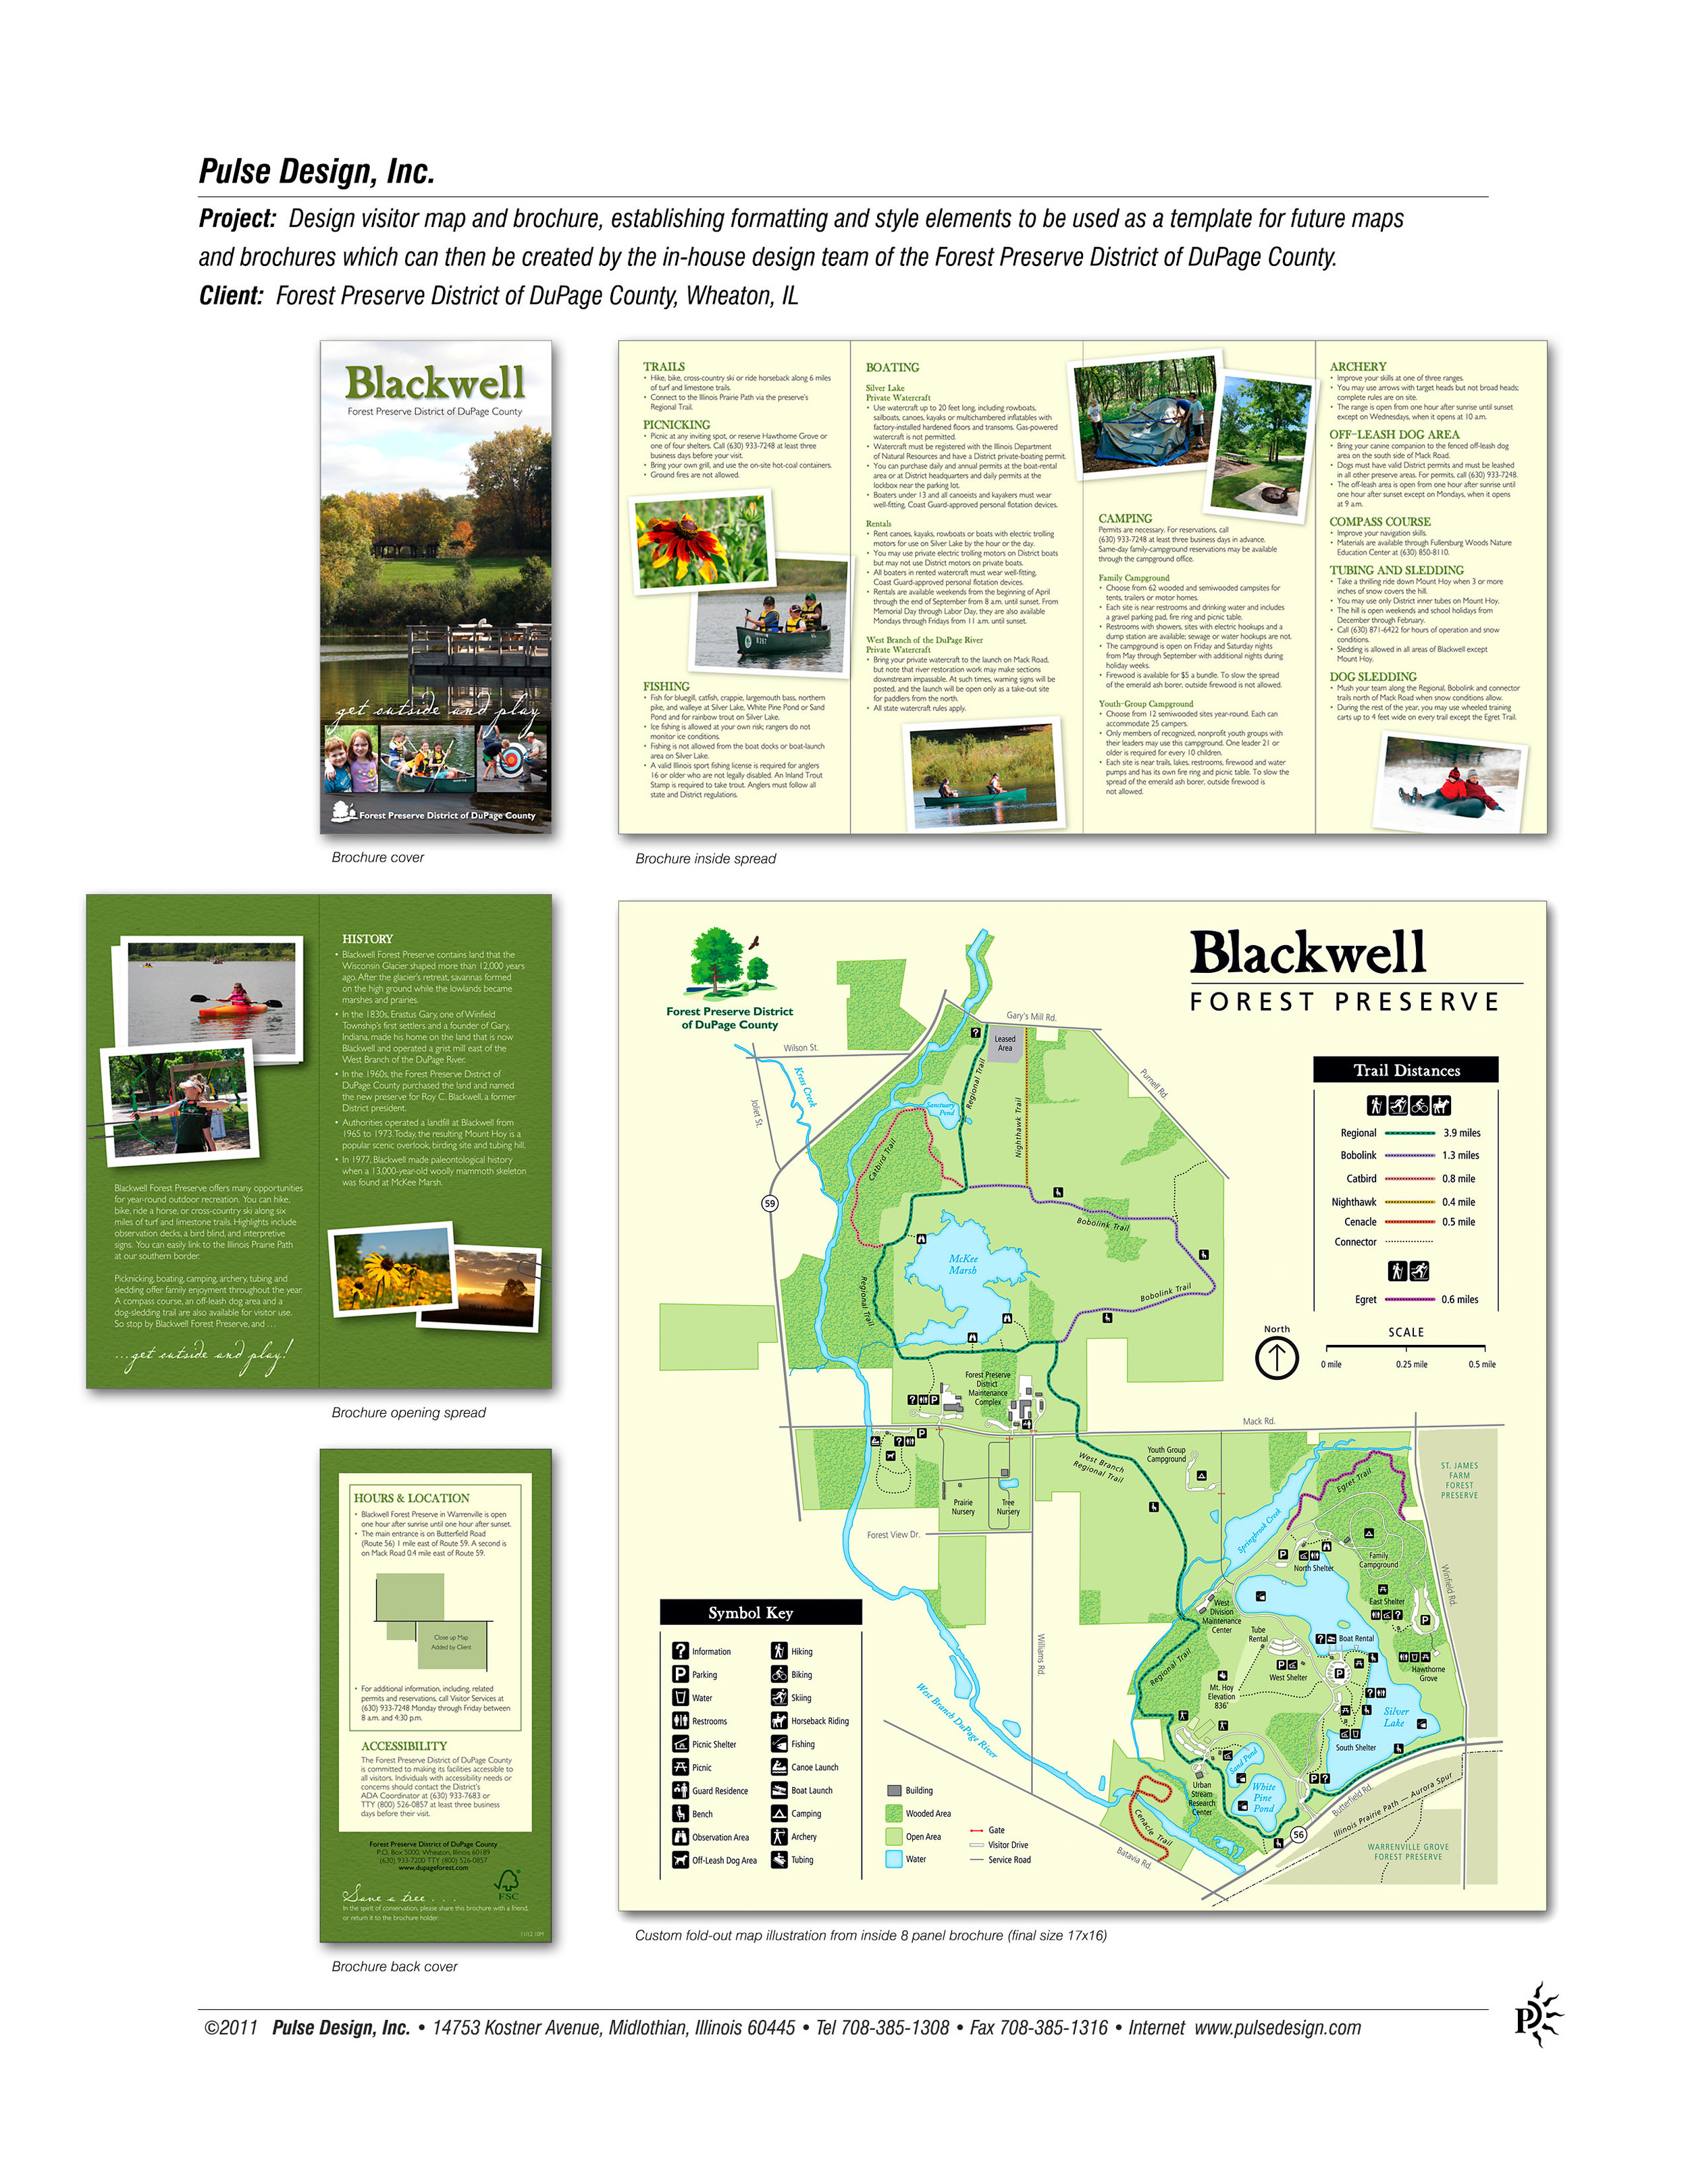 Dupage-Forest-Preserve-Blackwell-Map-Brochure-Sm-Pulse-Design-Inc.jpg